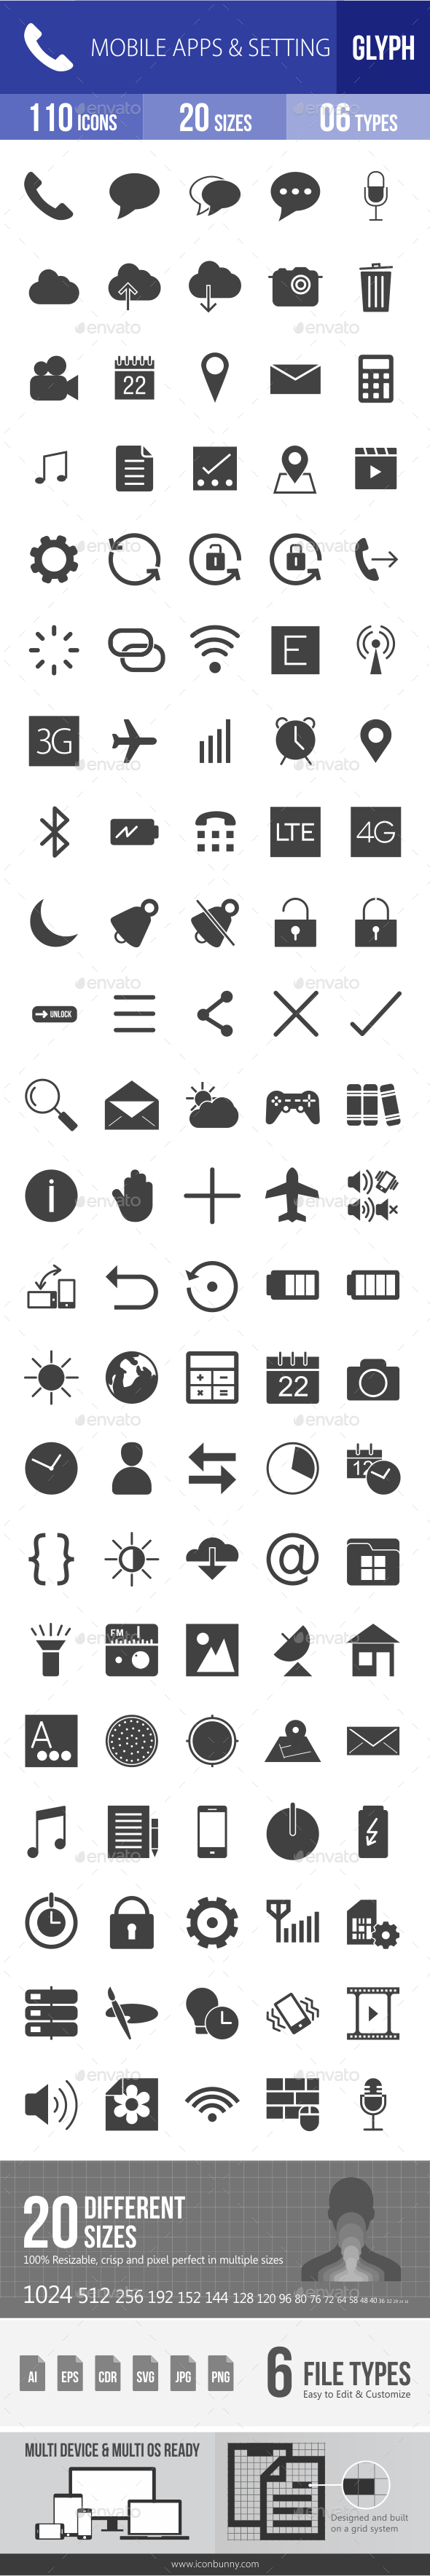 Mobile Apps & Settings Glyph Icons